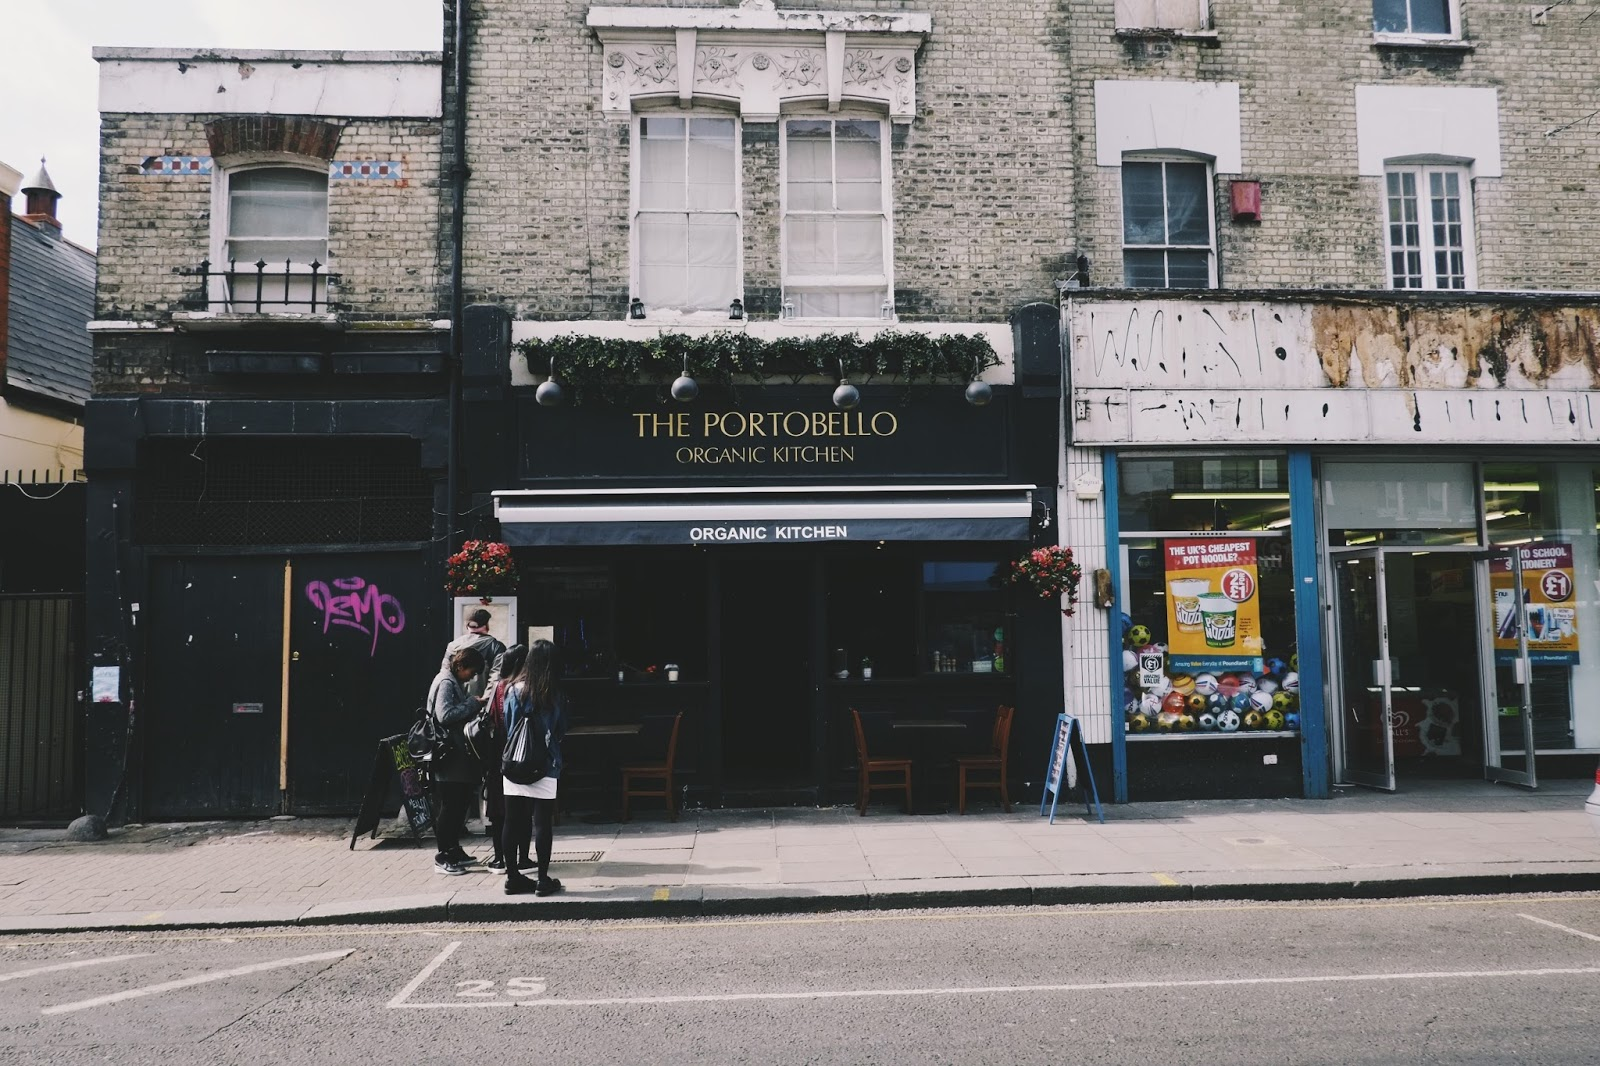 Portobello Organic Kitchen Some thoughts of now september 2015 soon enough we found ourselves in the center of the center strolling along regent street and even popping into the gigantic oxford street topshop much to workwithnaturefo